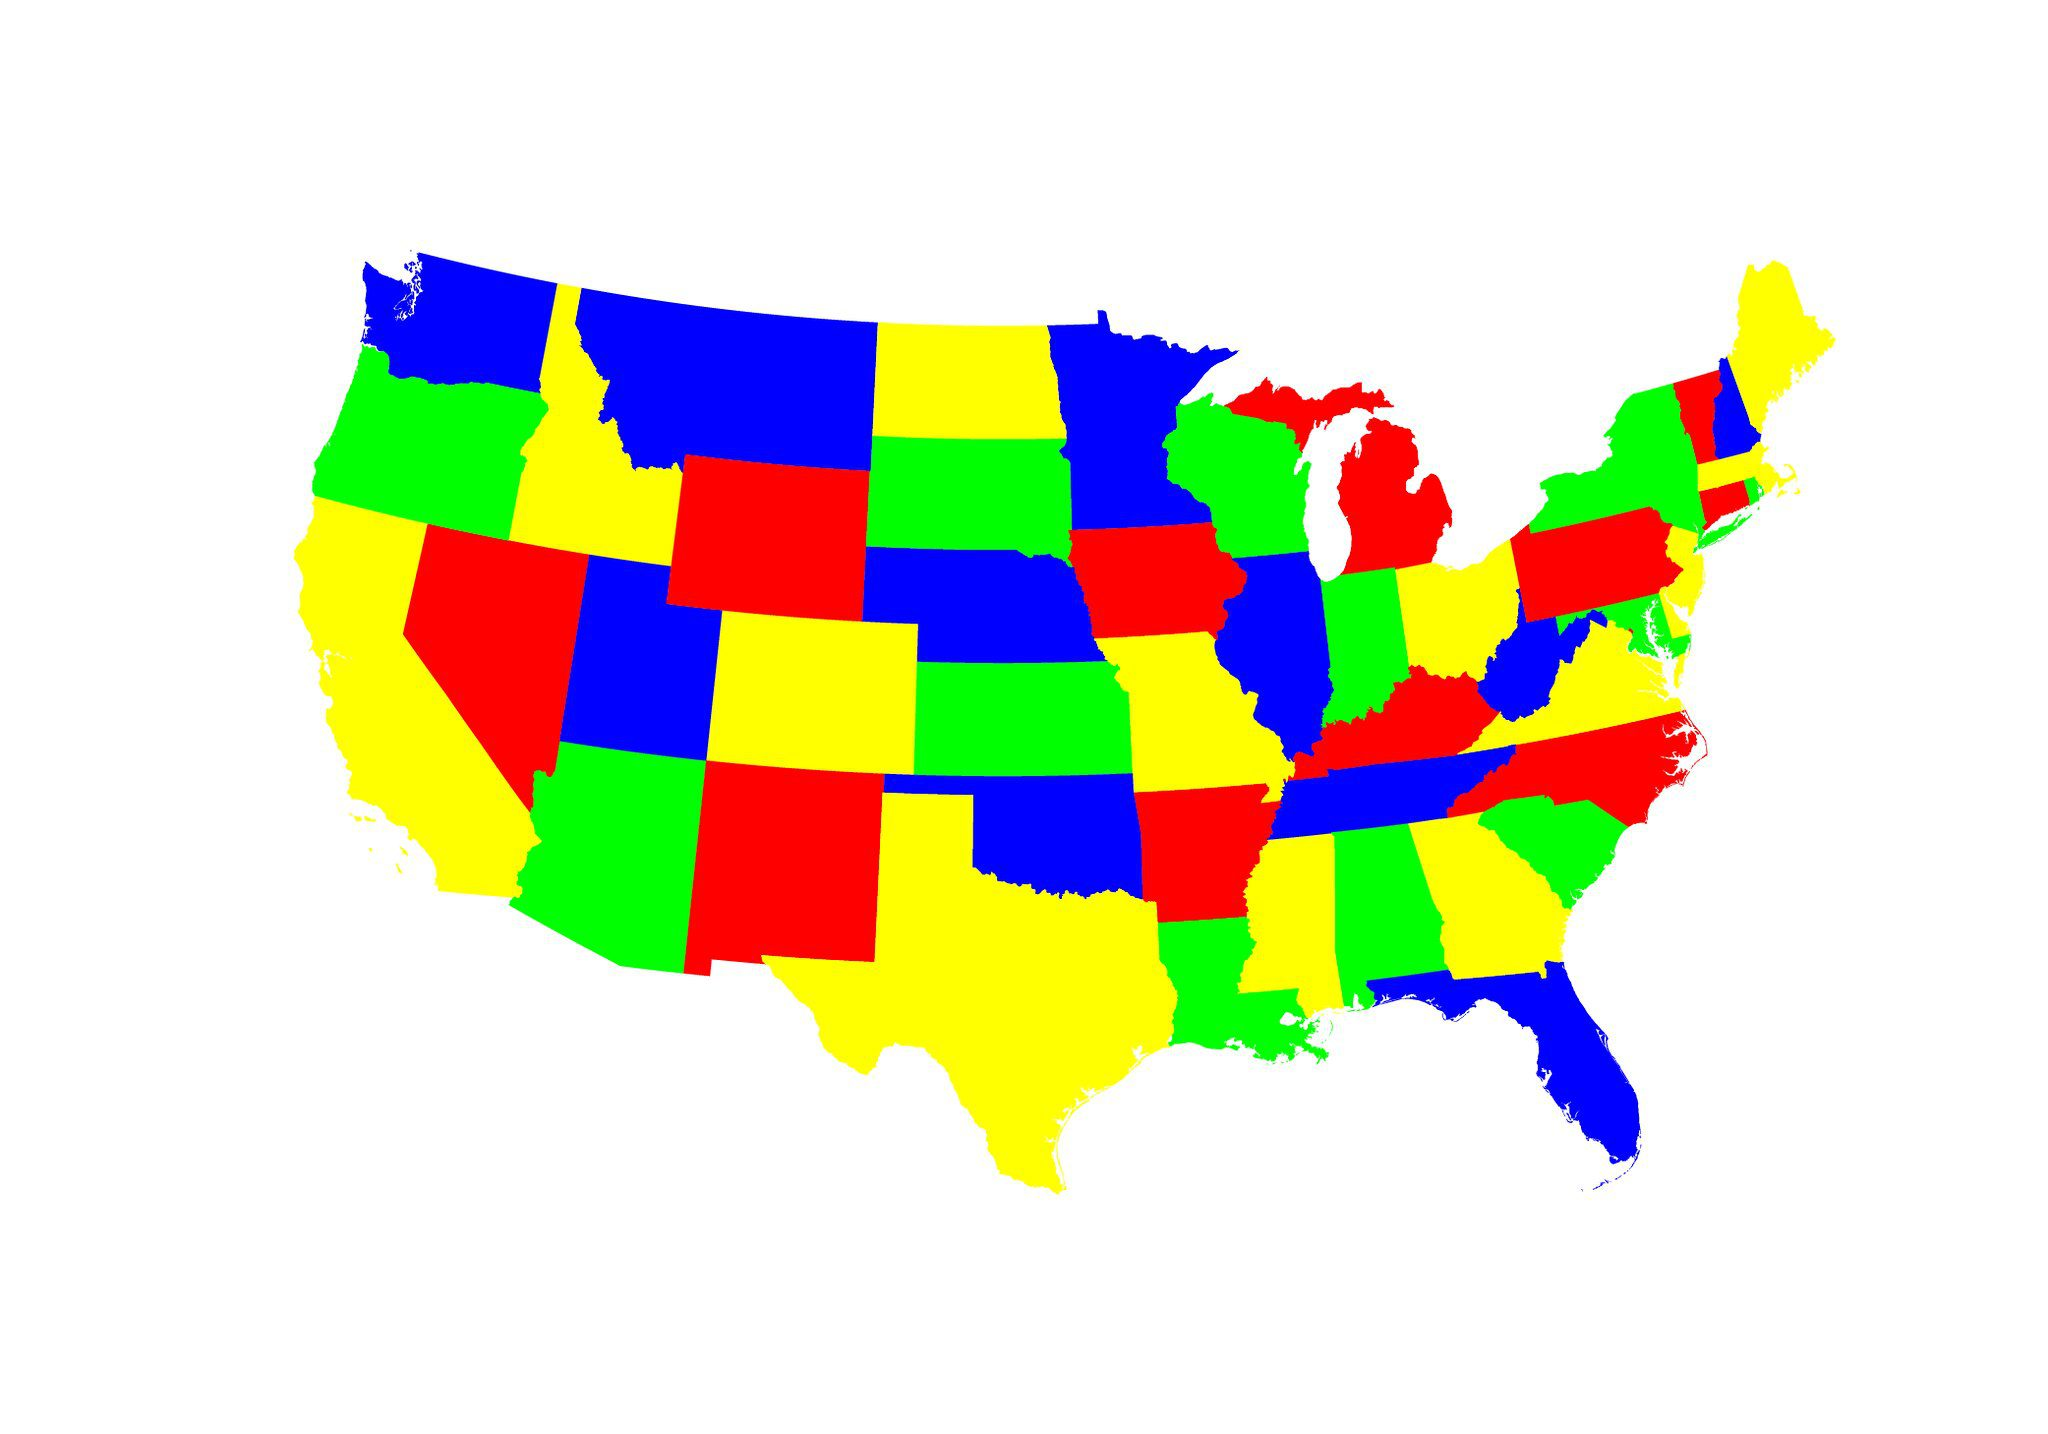 Top 3 States for Trafficking